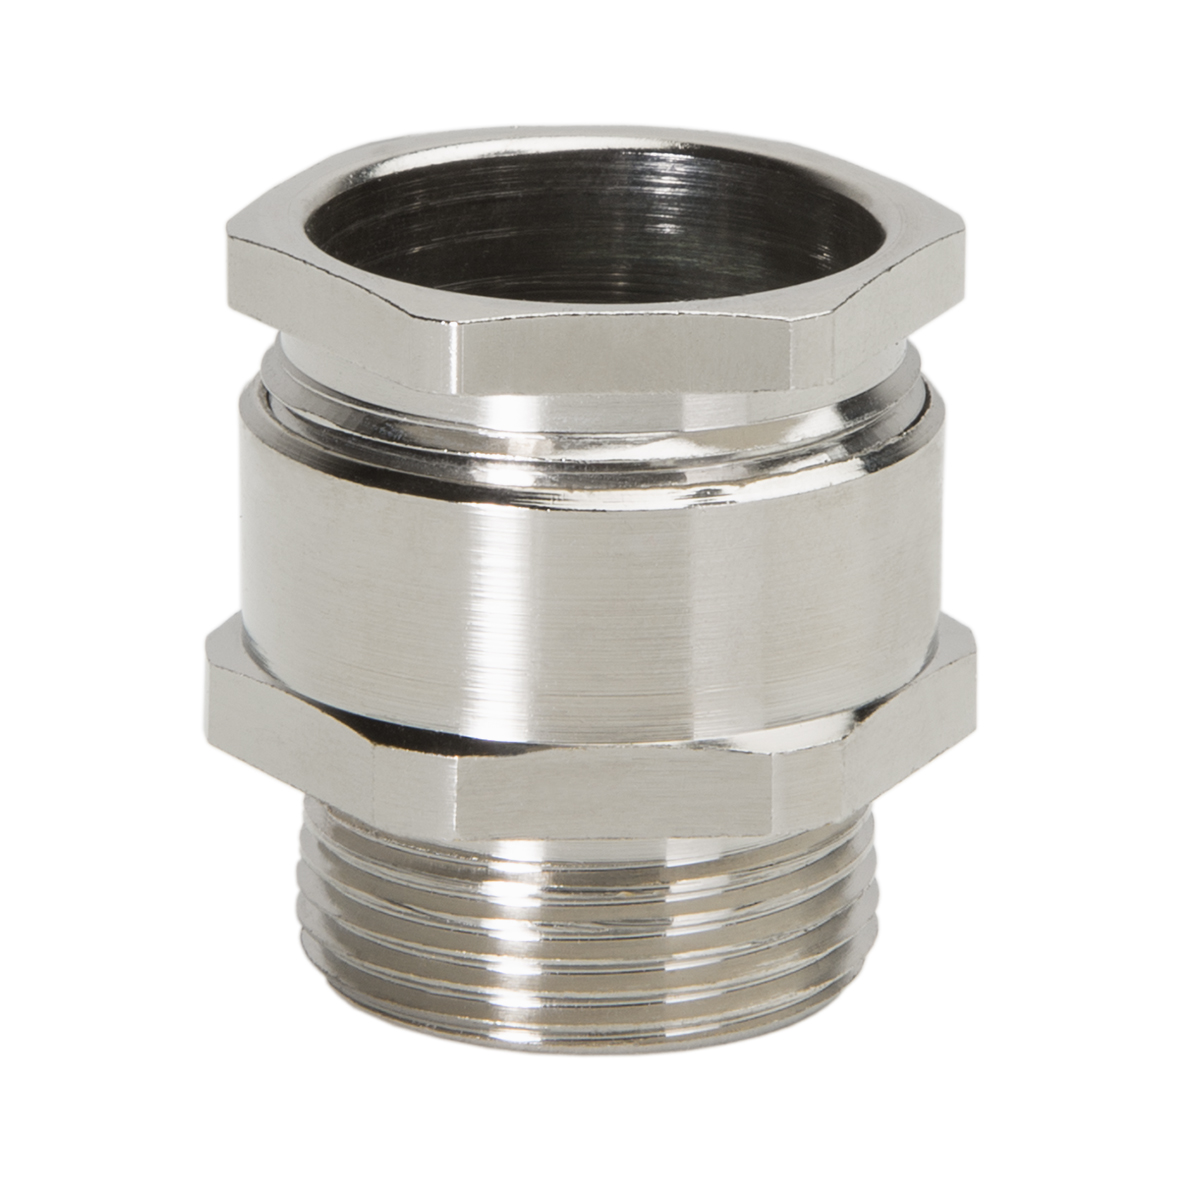 "HEXAGONAL CABLE GLANDS ""METRIC"" LONG THREAD BRASS NICKEL"